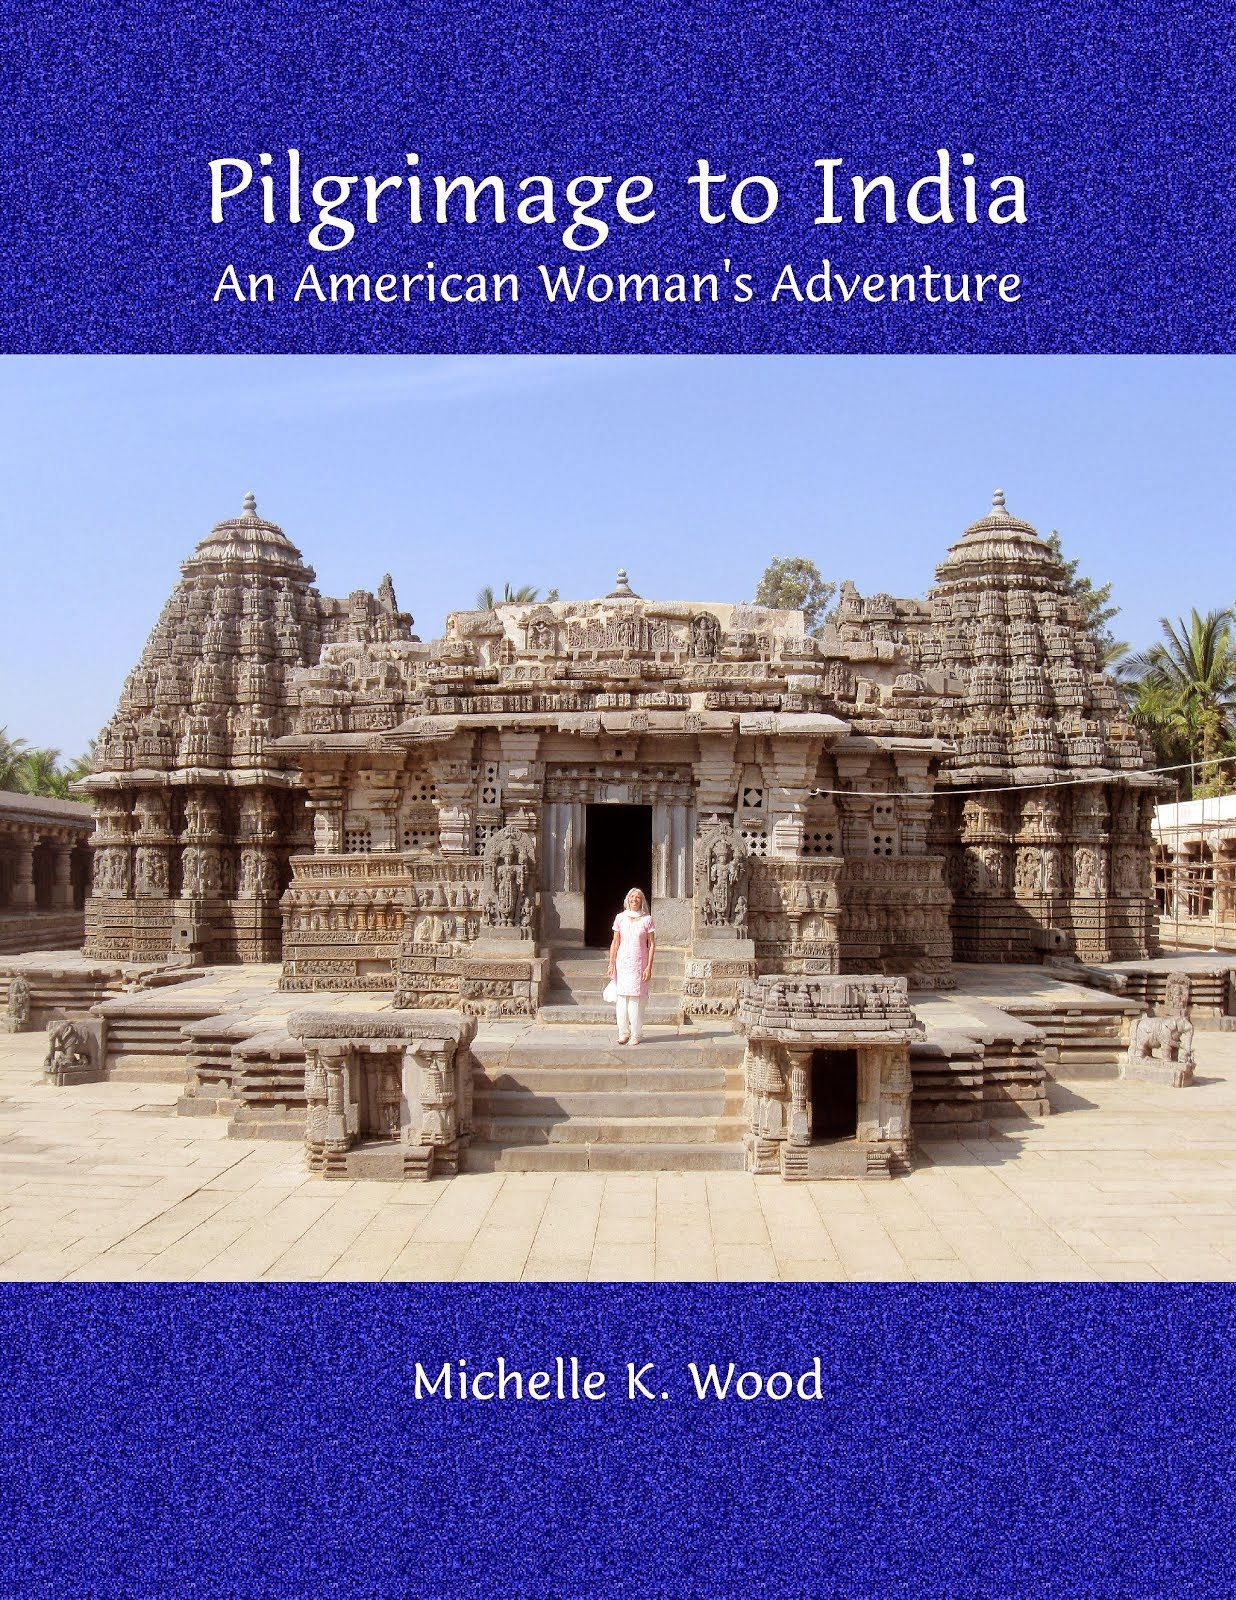 Book: Pilgrimage To India: An American Woman's Adventure